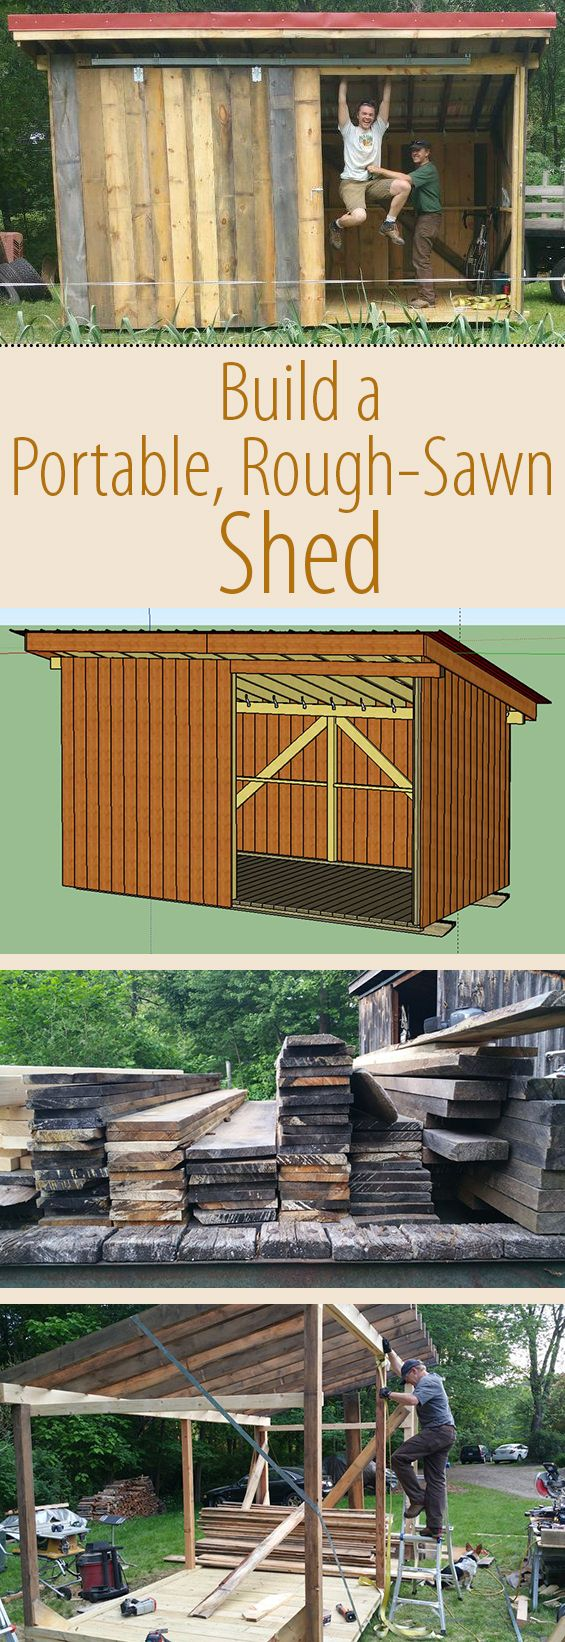 ^ 1000+ ideas about Portable Storage Sheds on Pinterest Portable ...